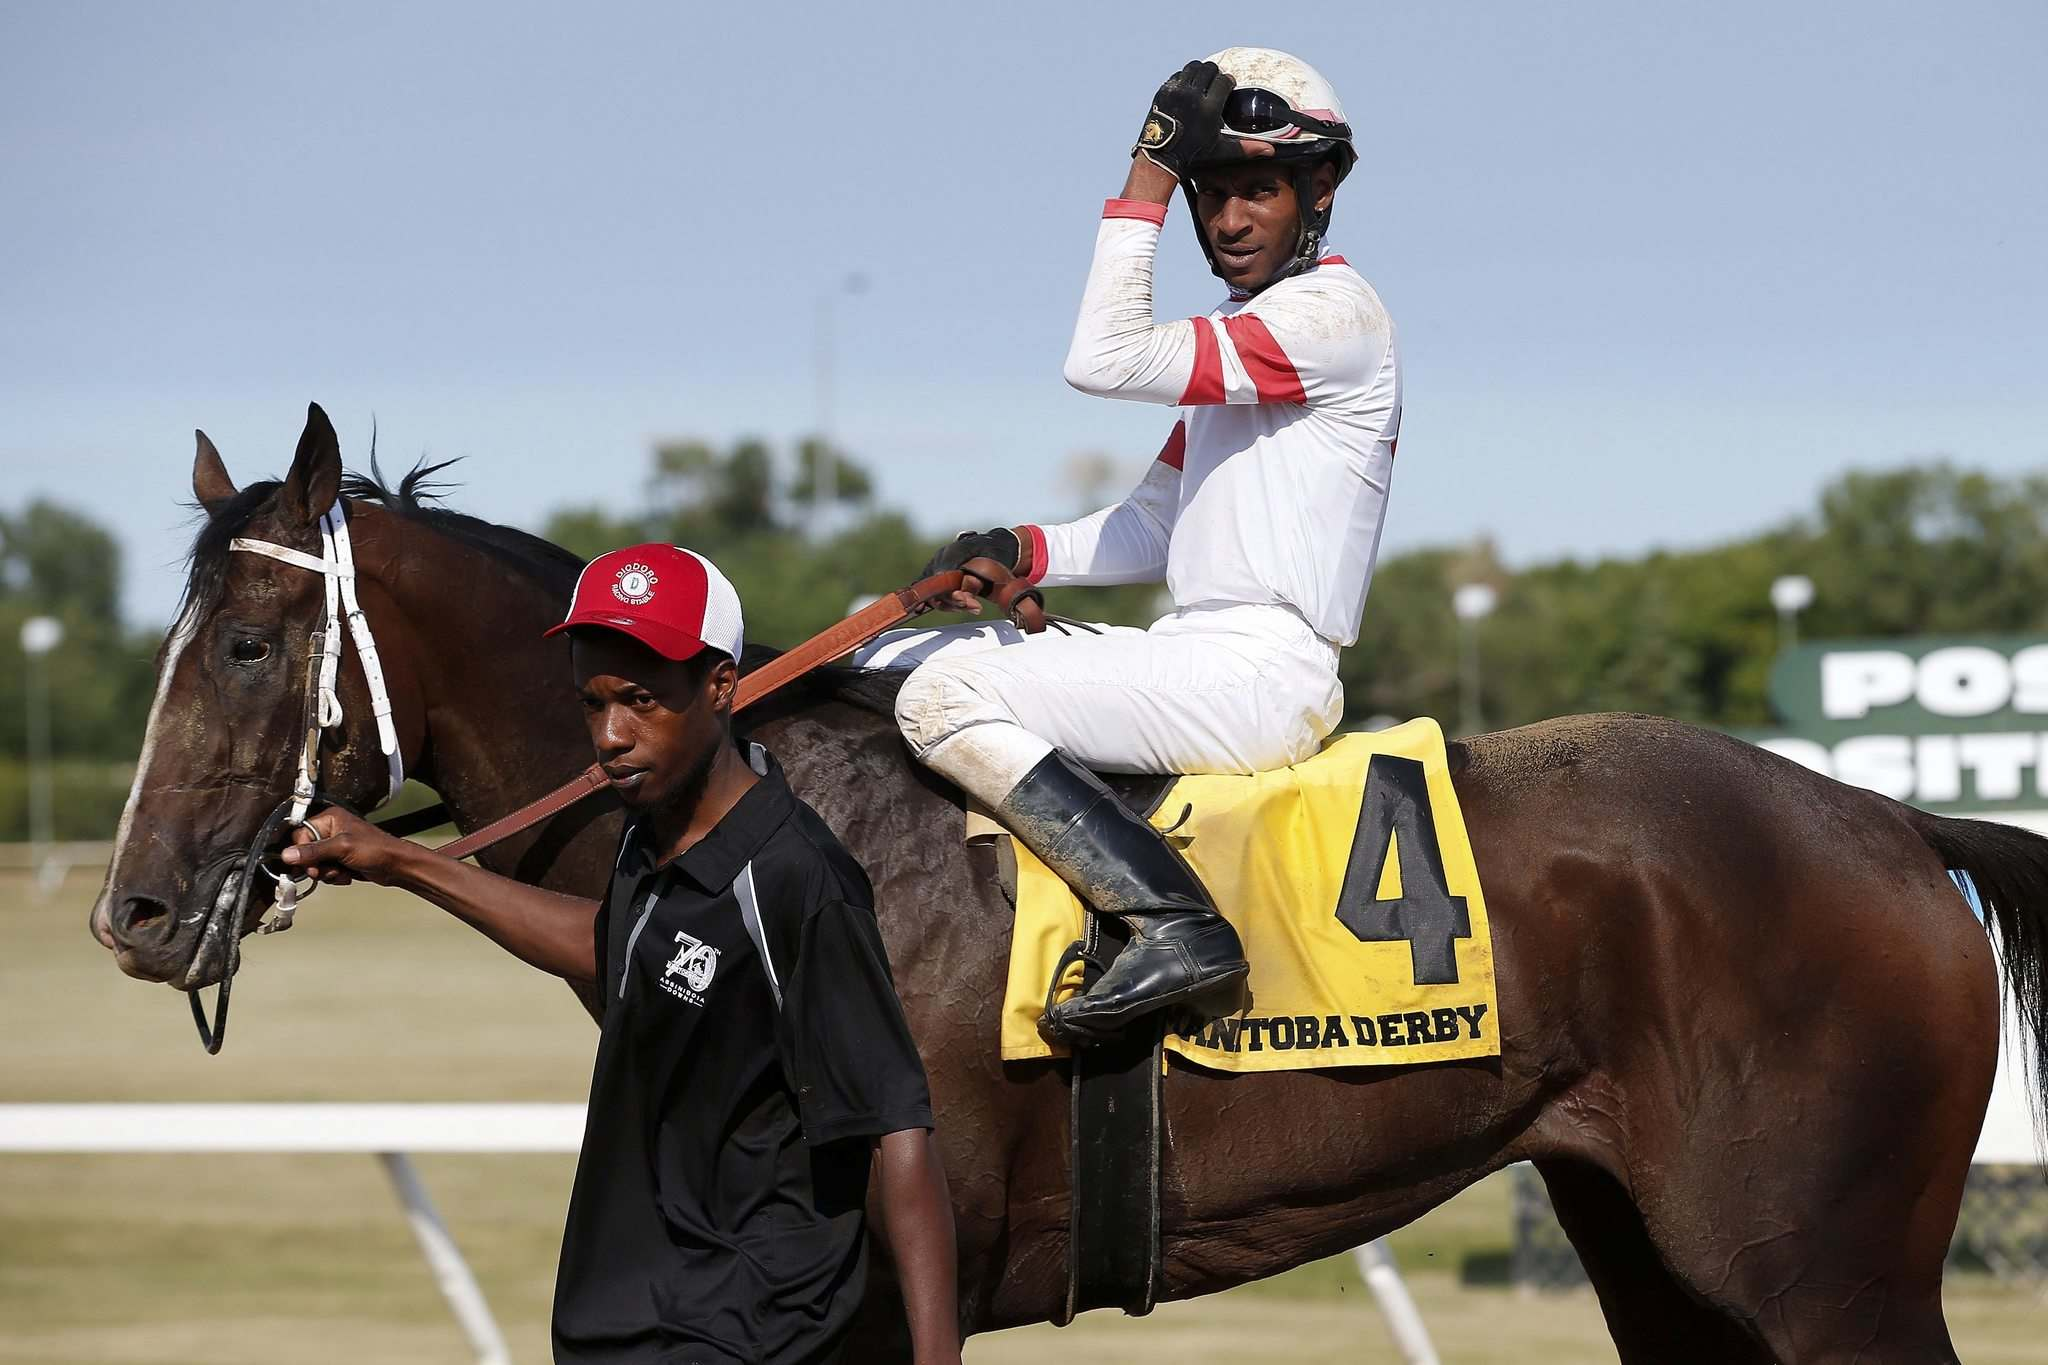 Rico Walcott riding Sky Promise wins the 70th running of the Manitoba Derby at Assiniboia Downs Monday. (John Woods / Winnipeg Free Press)</p>